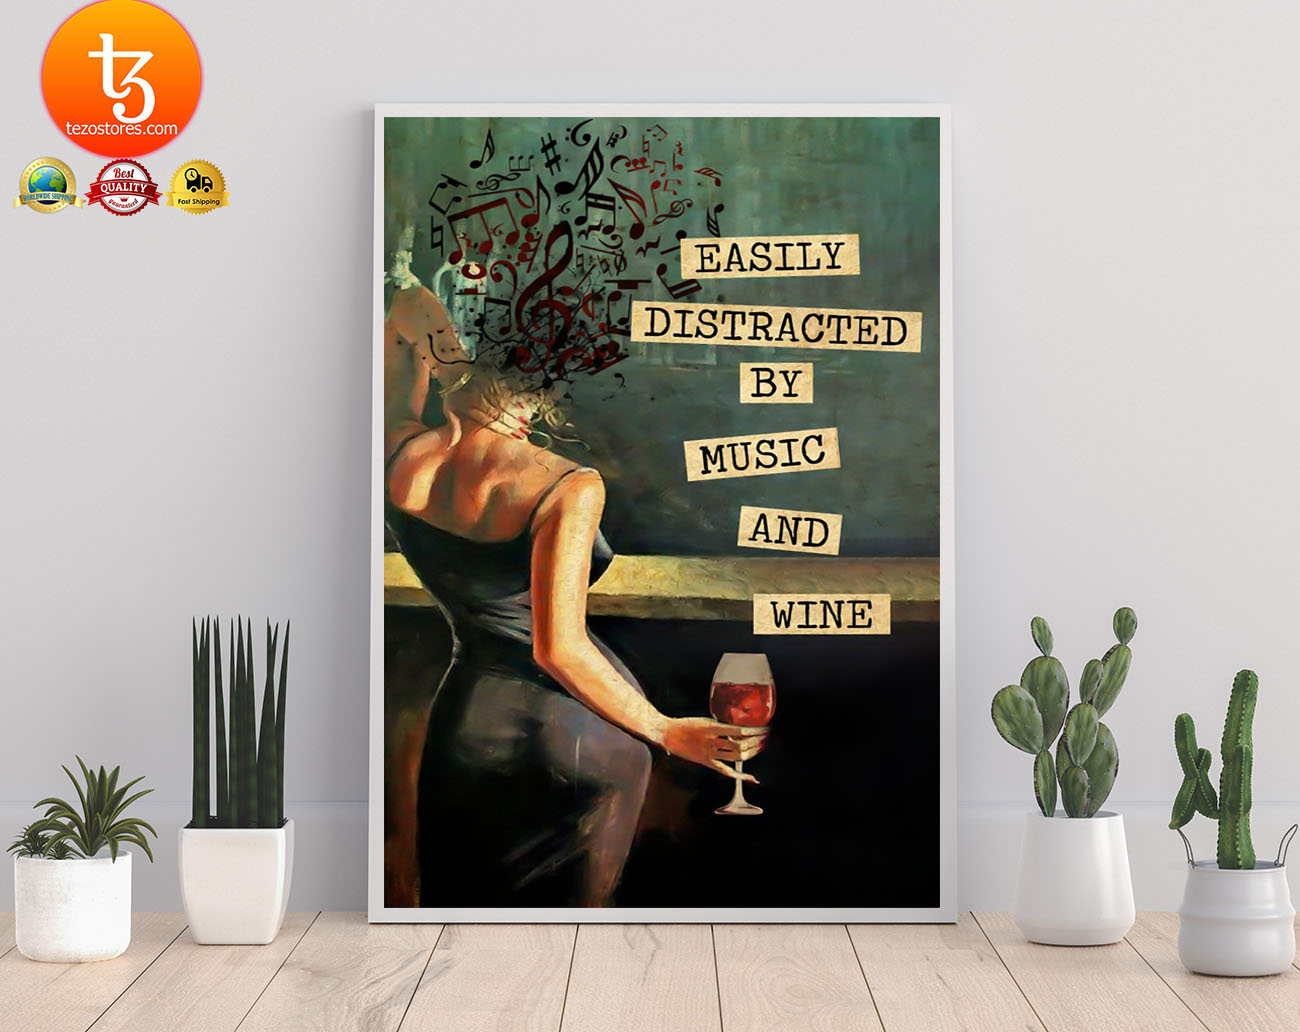 Vintage girl easily distracted by music and wine poster 23